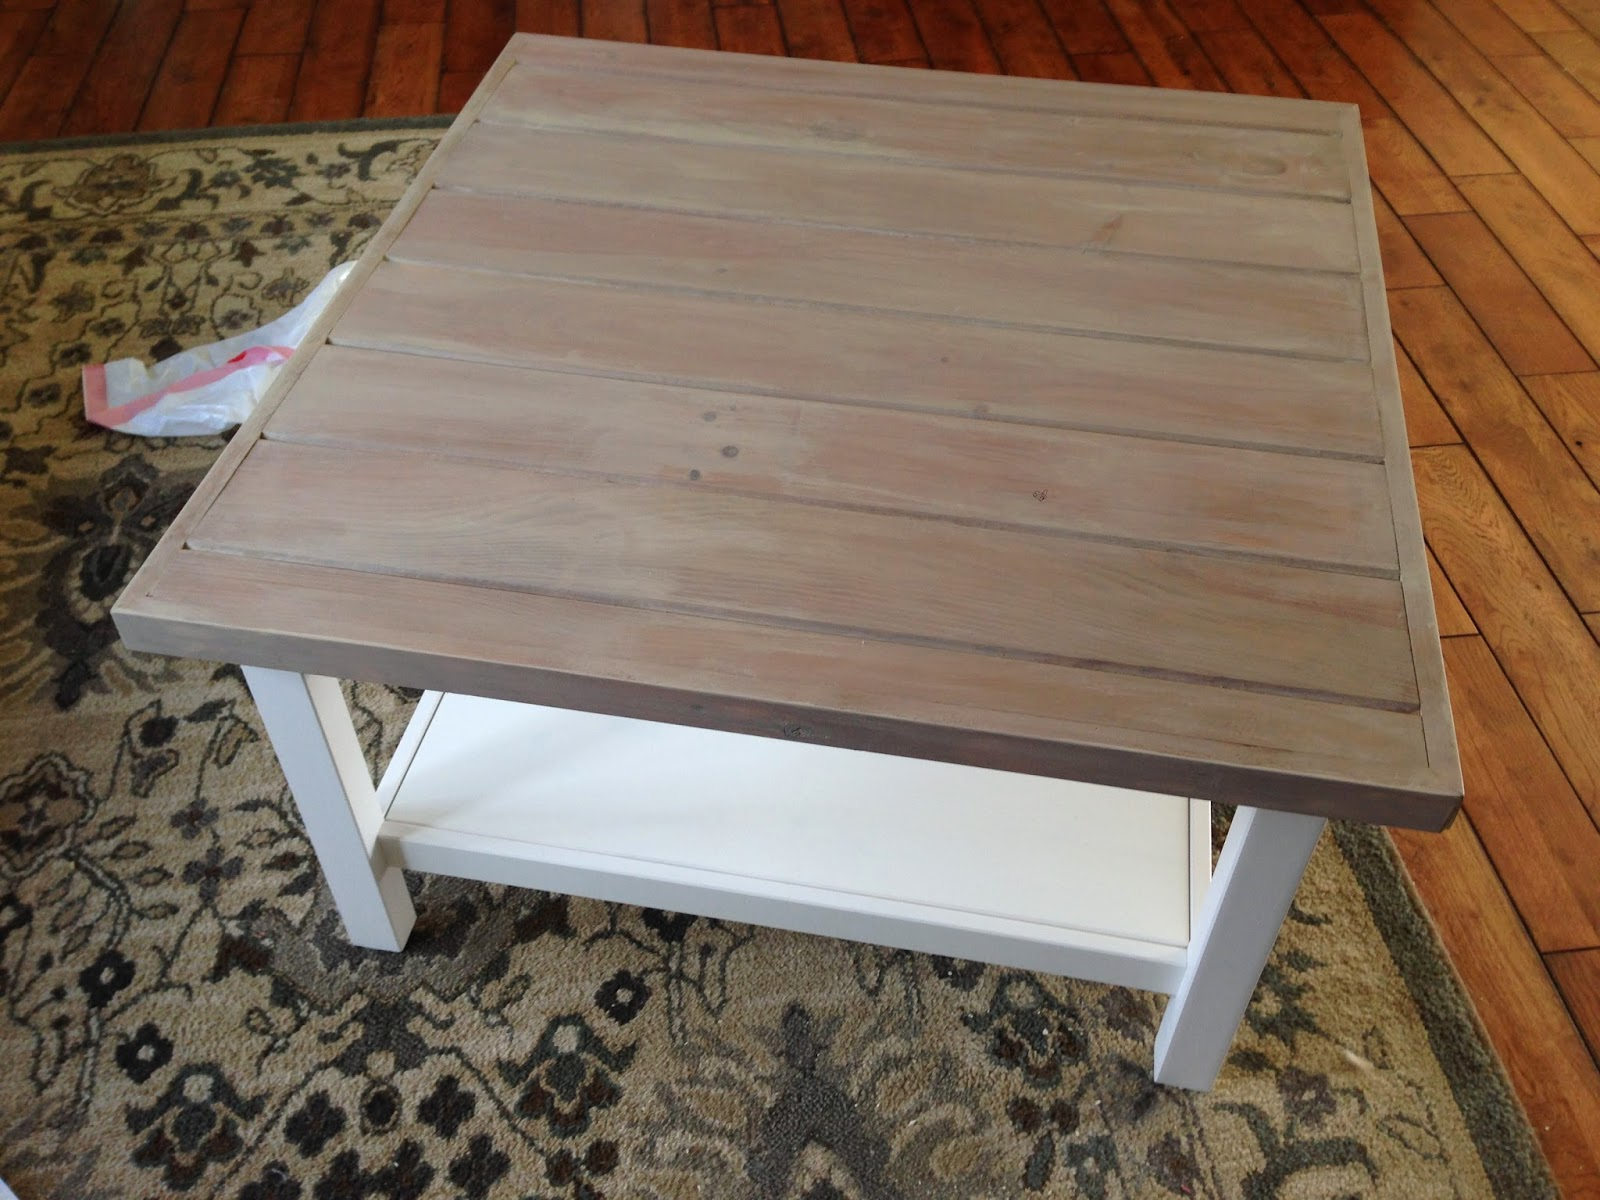 Vinegar and steel wool stain on coffee table planked wood top- www.goldenboysandme.com